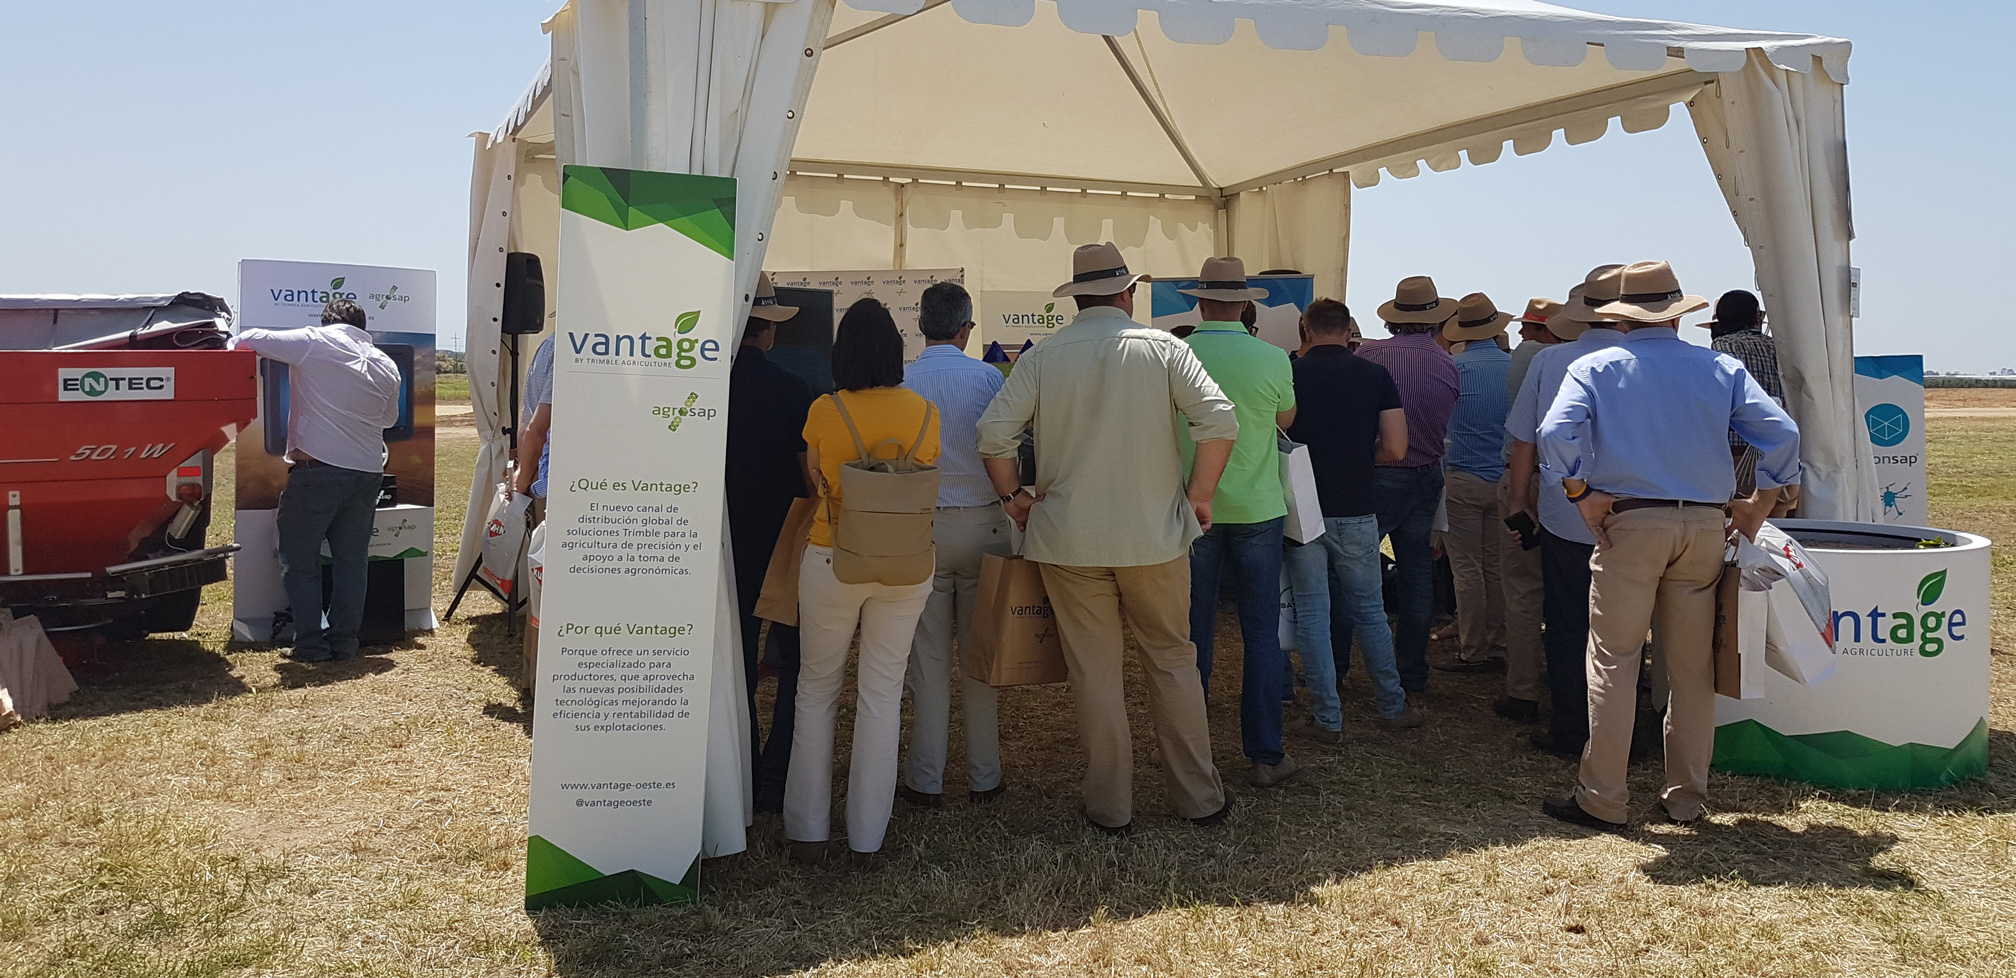 Stand de Vantage by Trimble en el Digital Farming Day